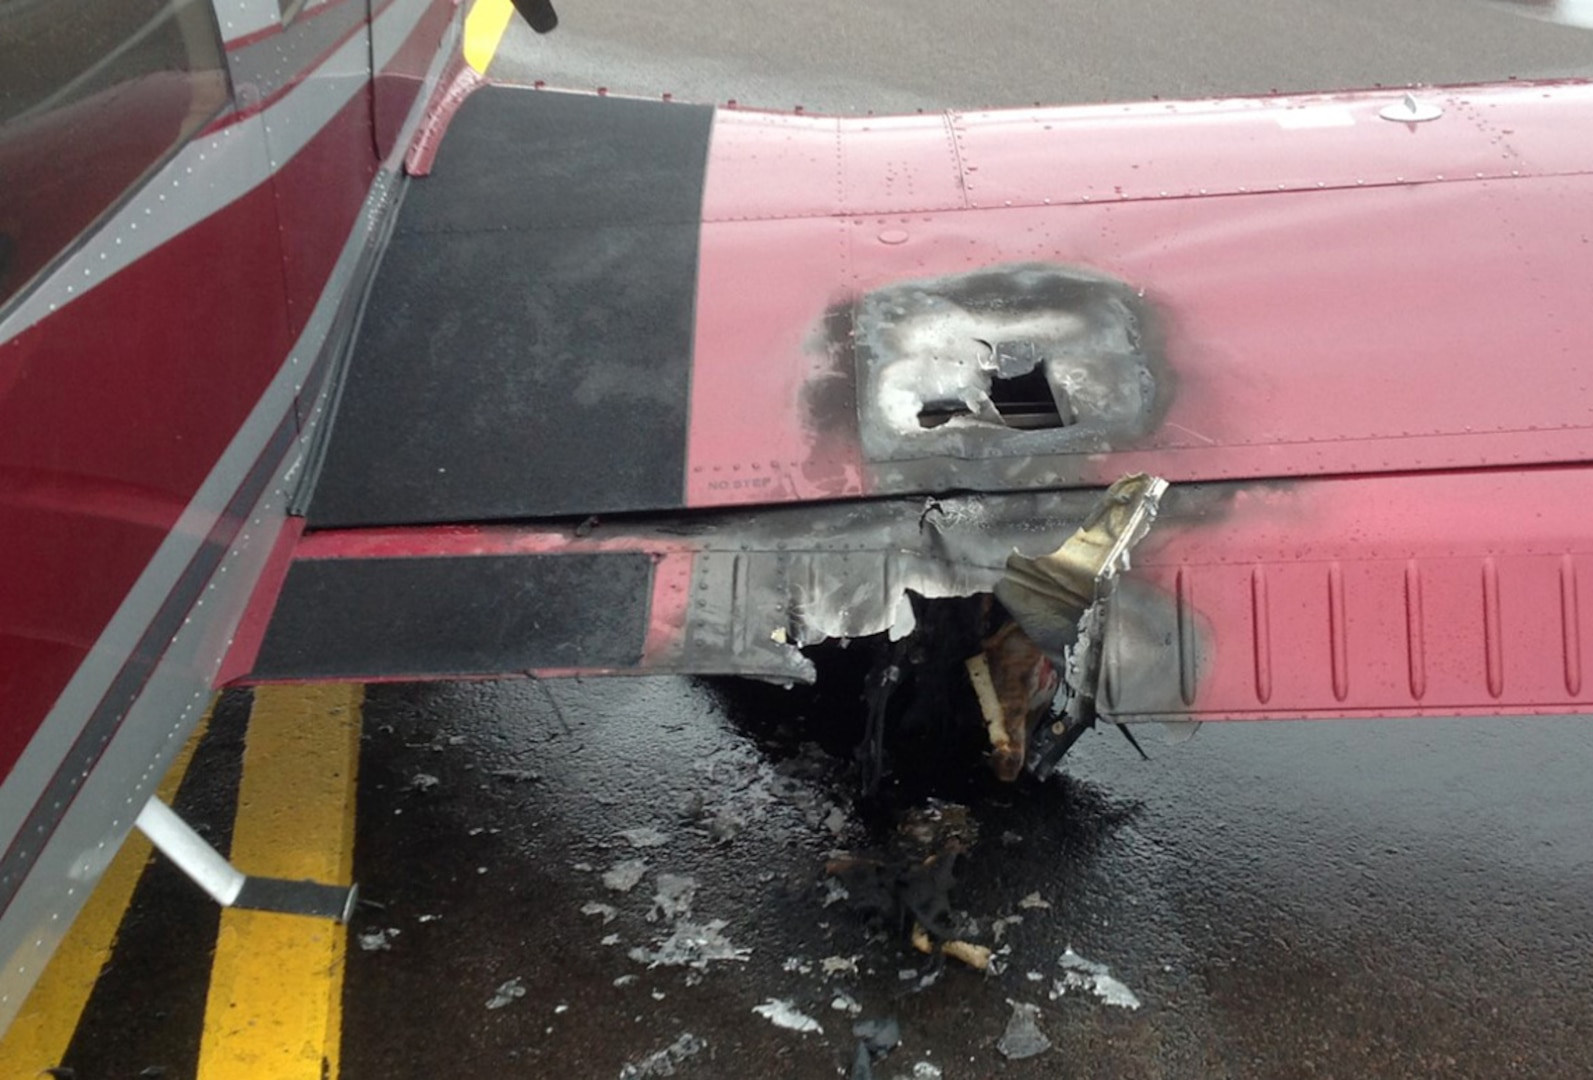 A photo taken in the aftermath of the 158th Fighter Wing Fire Department's response to an aircraft fire shows damage to the aircraft's fuselage. (courtesy photo)